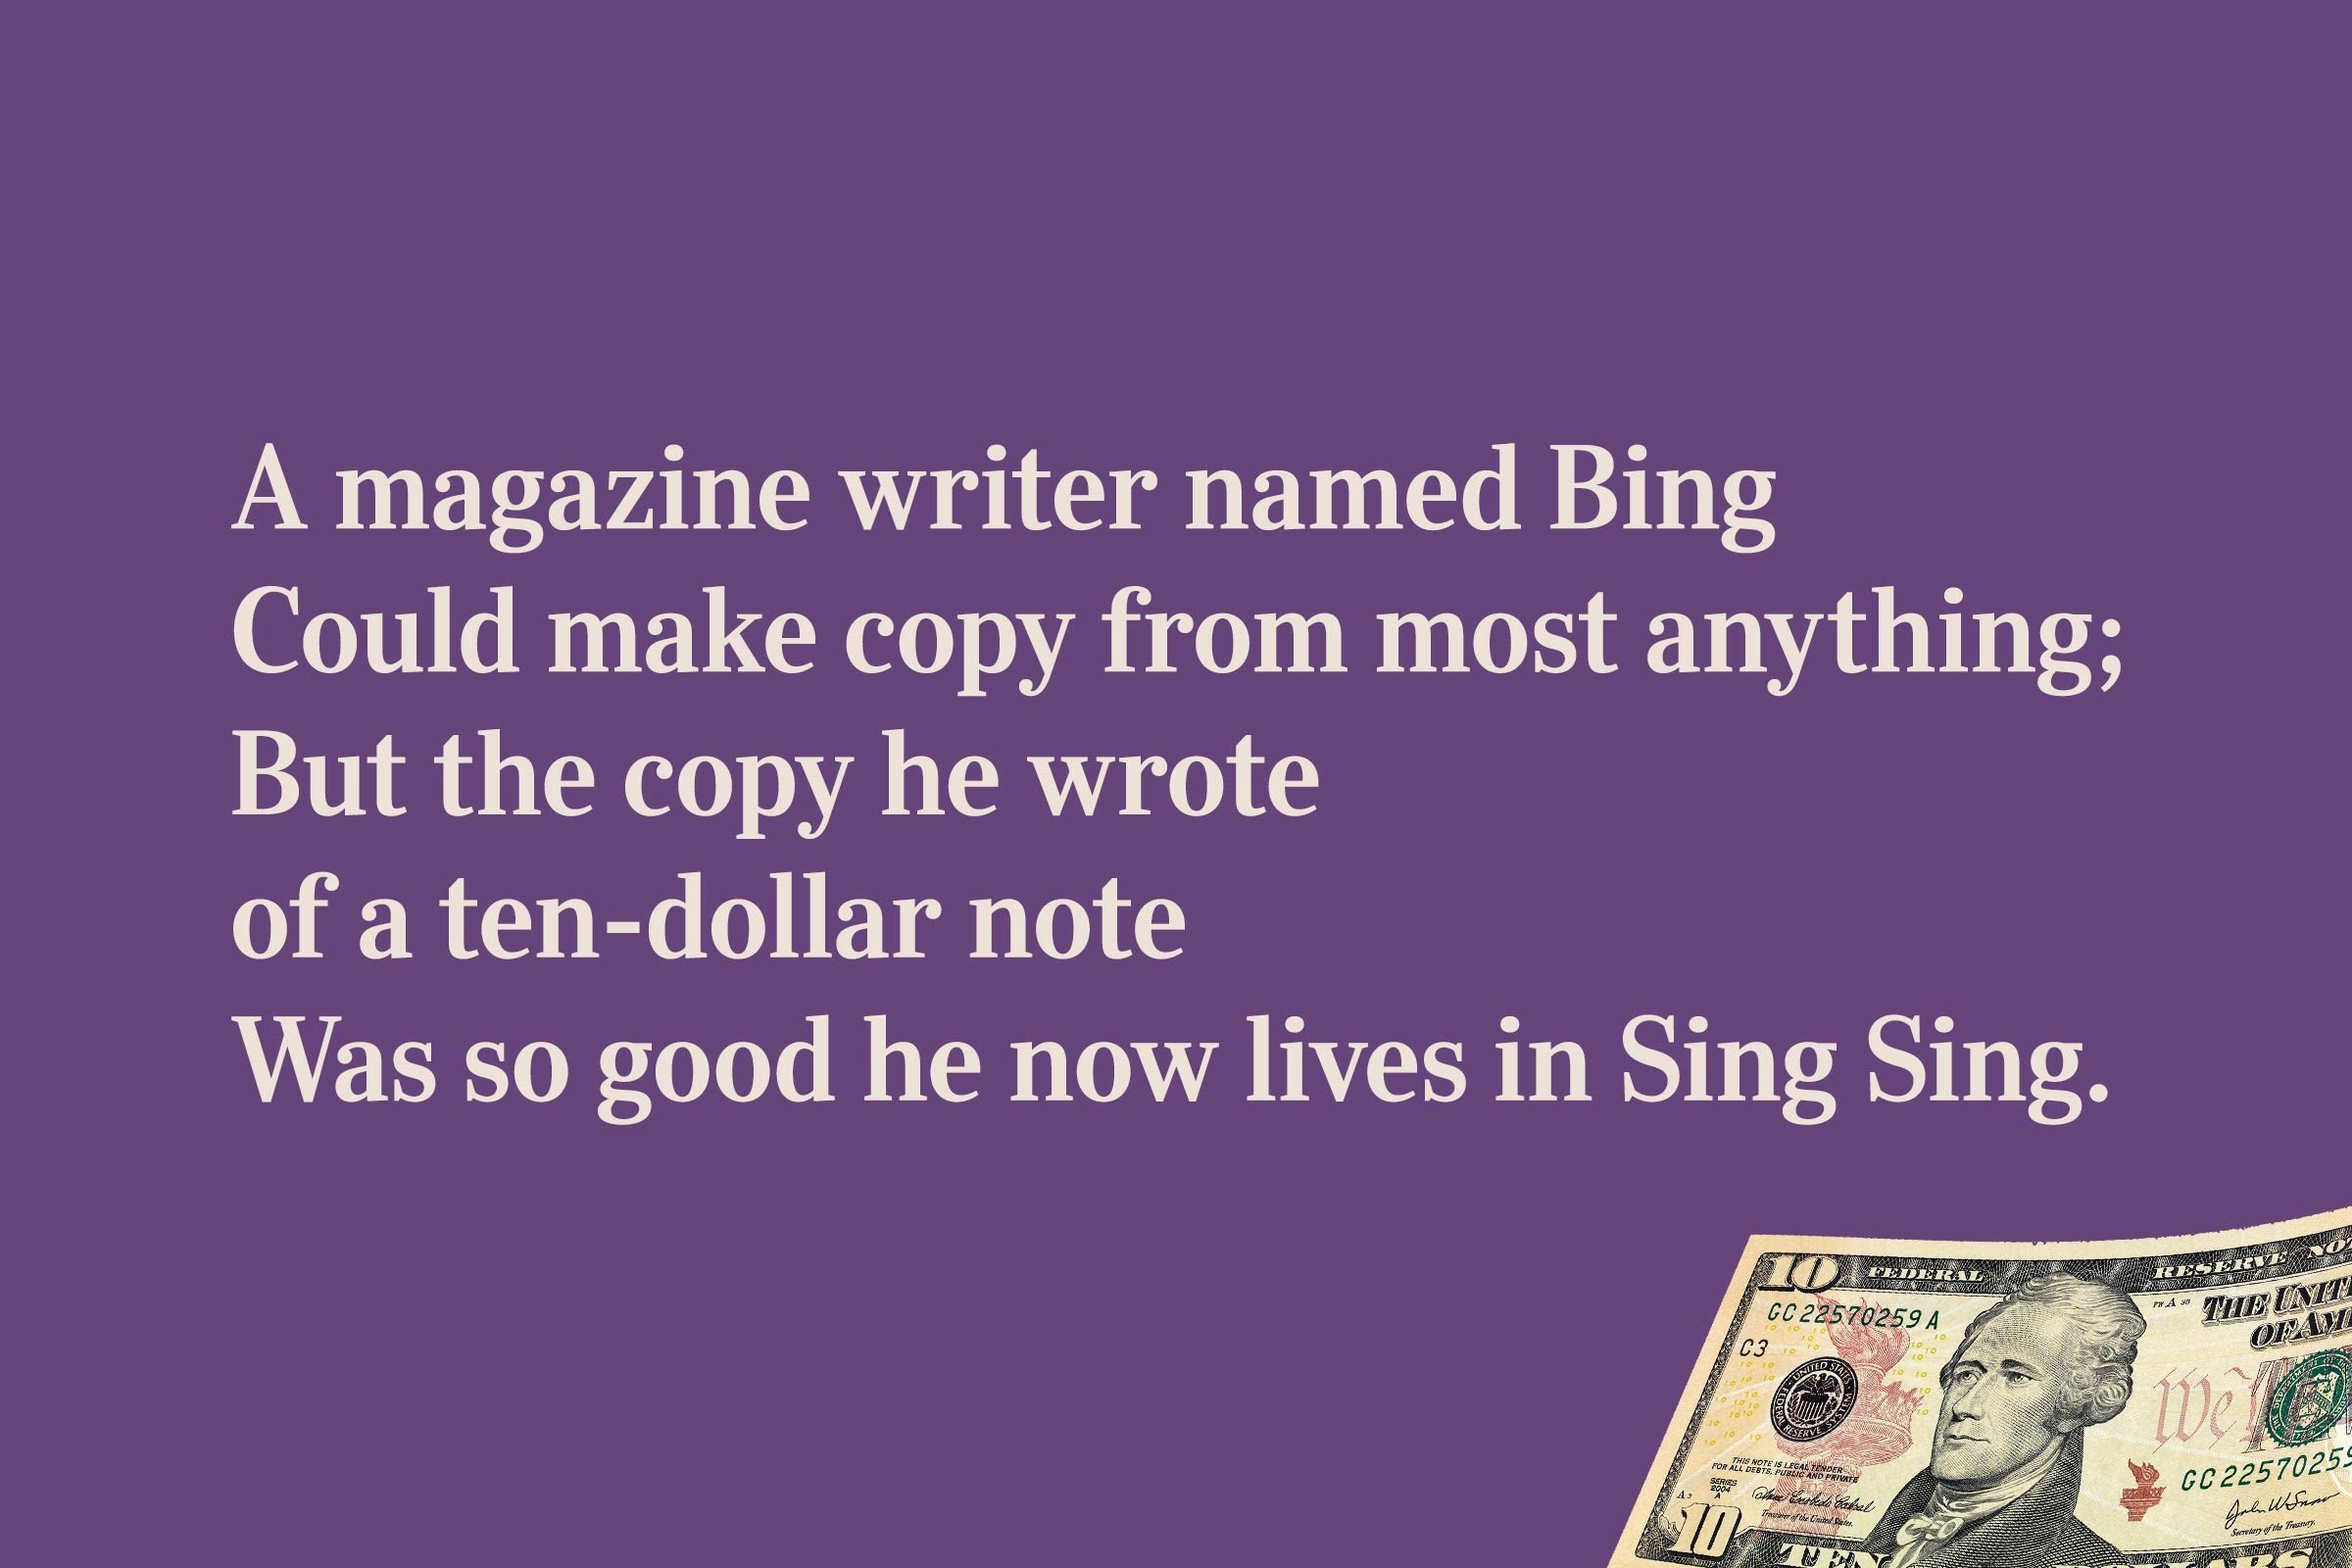 A magazine writer named Bing / Could make copy from most anything; / But the copy he wrote / of a ten-dollar note / Was so good he now lives in Sing Sing.